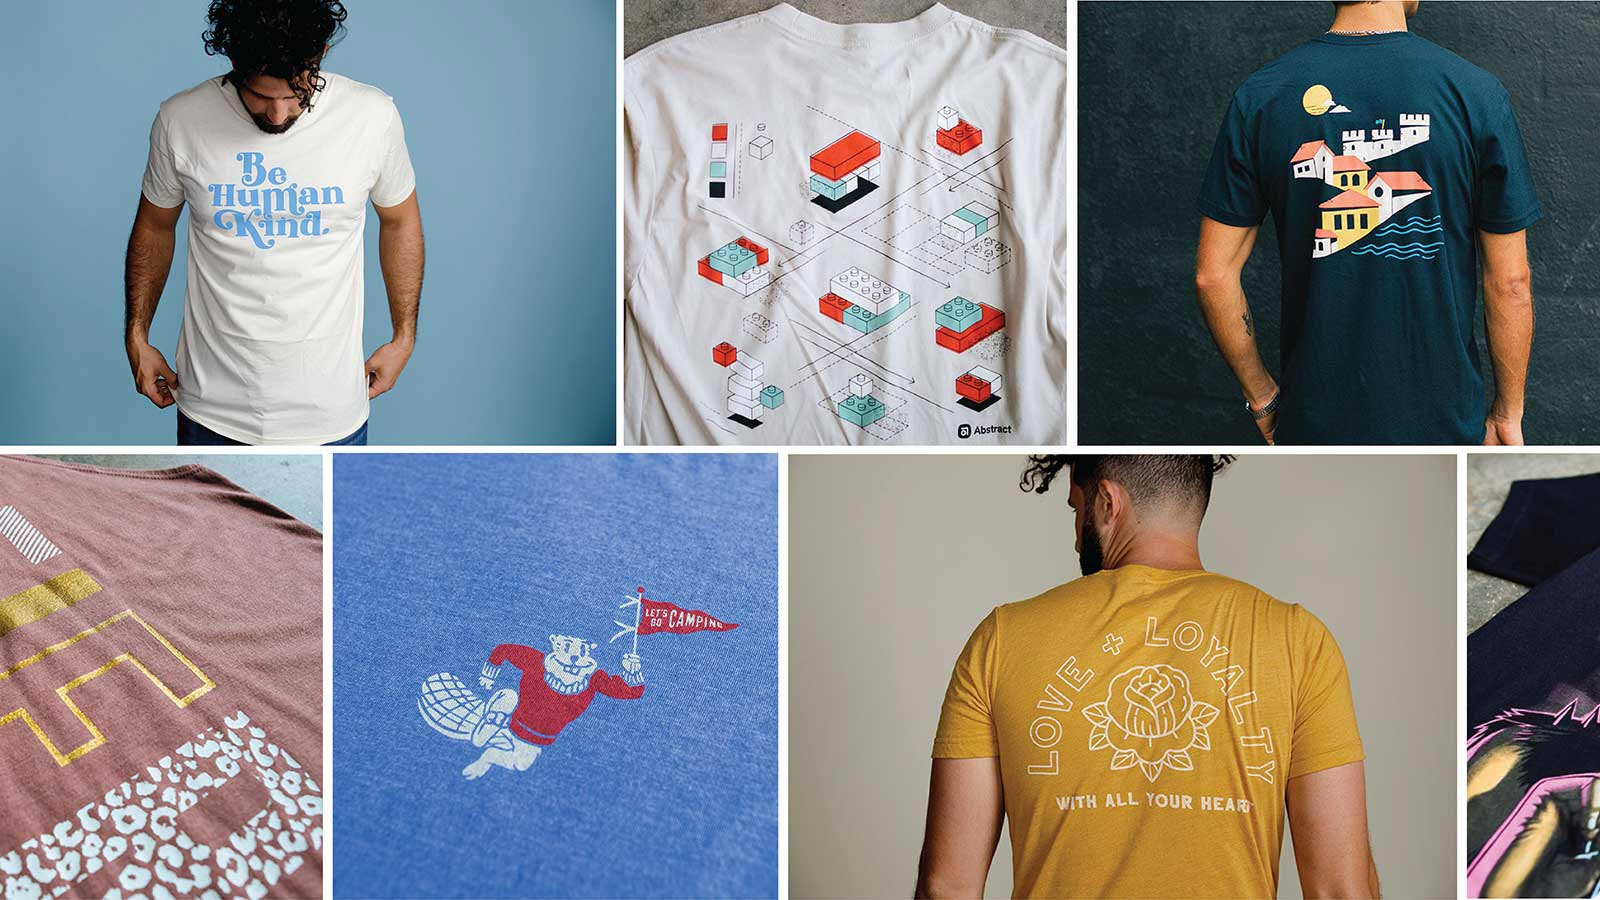 19 of the Most Innovative T-Shirt Designs